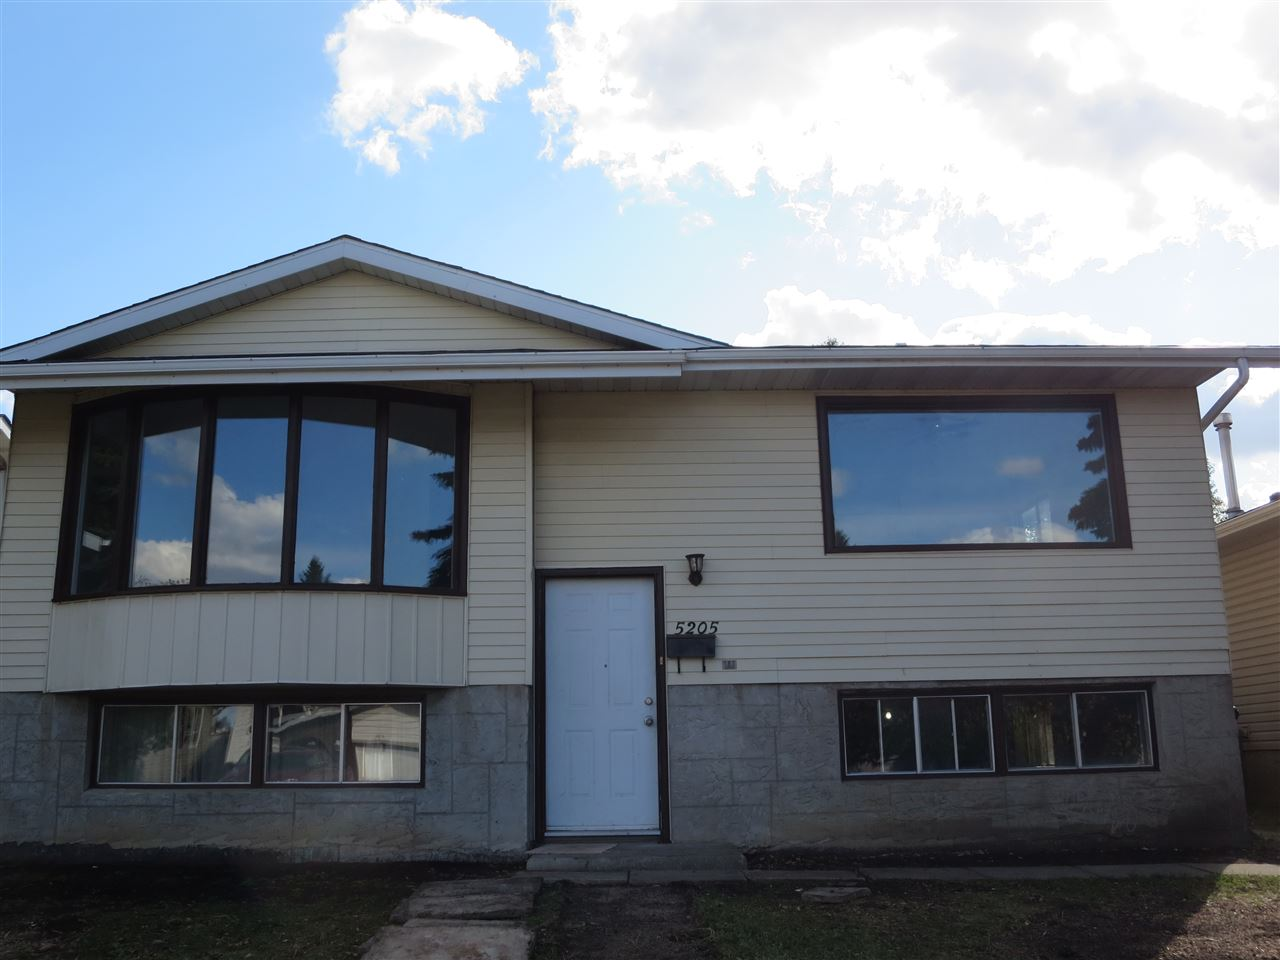 Main Photo: 5205 14A Avenue in Edmonton: Zone 29 House for sale : MLS® # E4082978